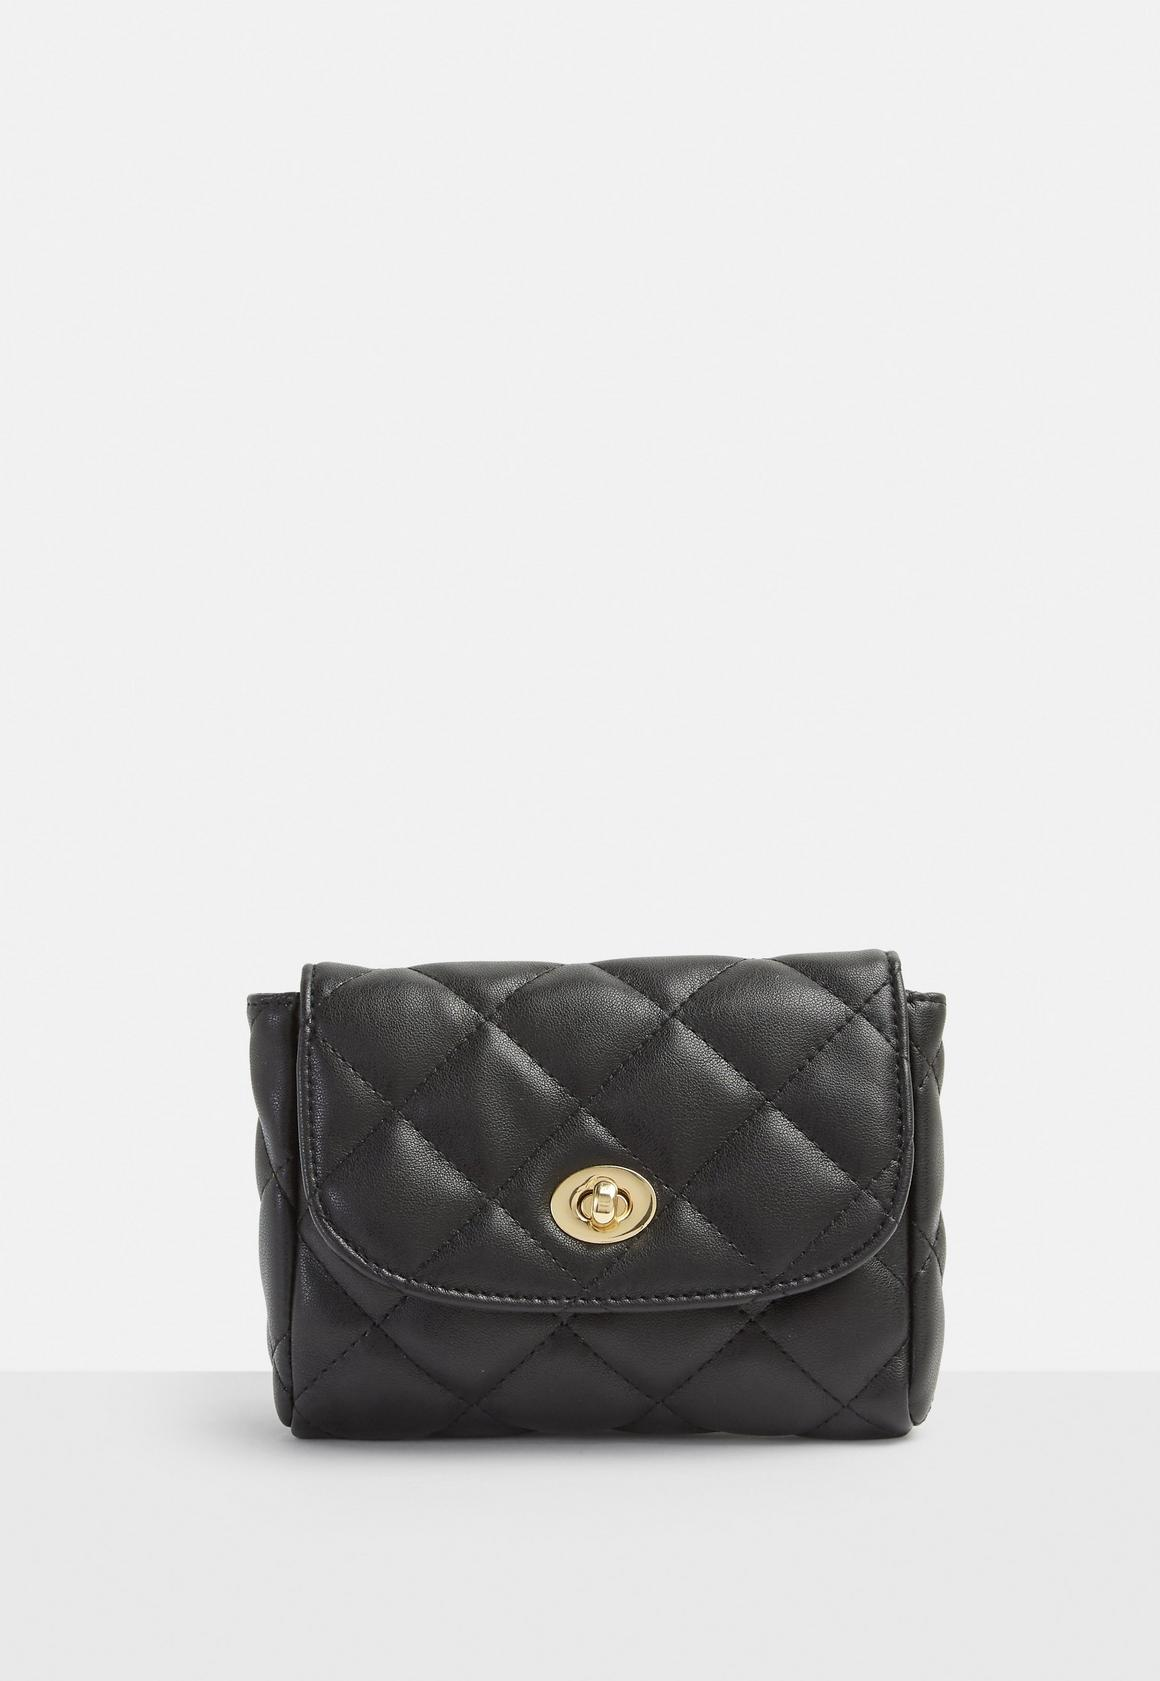 Black Quilted Chain Bum Bag | Missguided : black quilted chain bag - Adamdwight.com